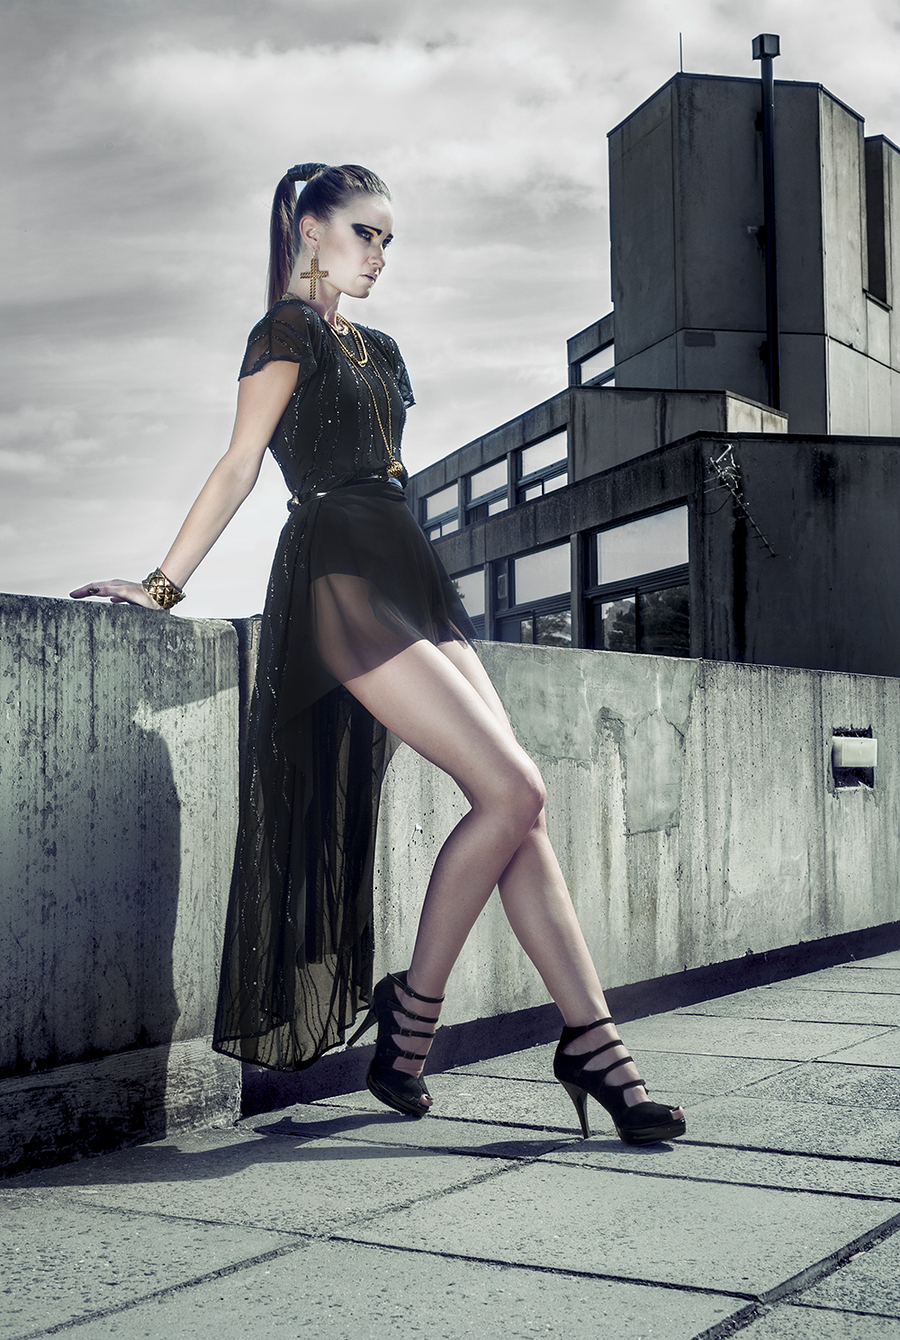 Fashion / Photography by NIKKALA ADES PHOTOGRAPHY, Model Lindsey / Uploaded 20th July 2013 @ 11:13 PM